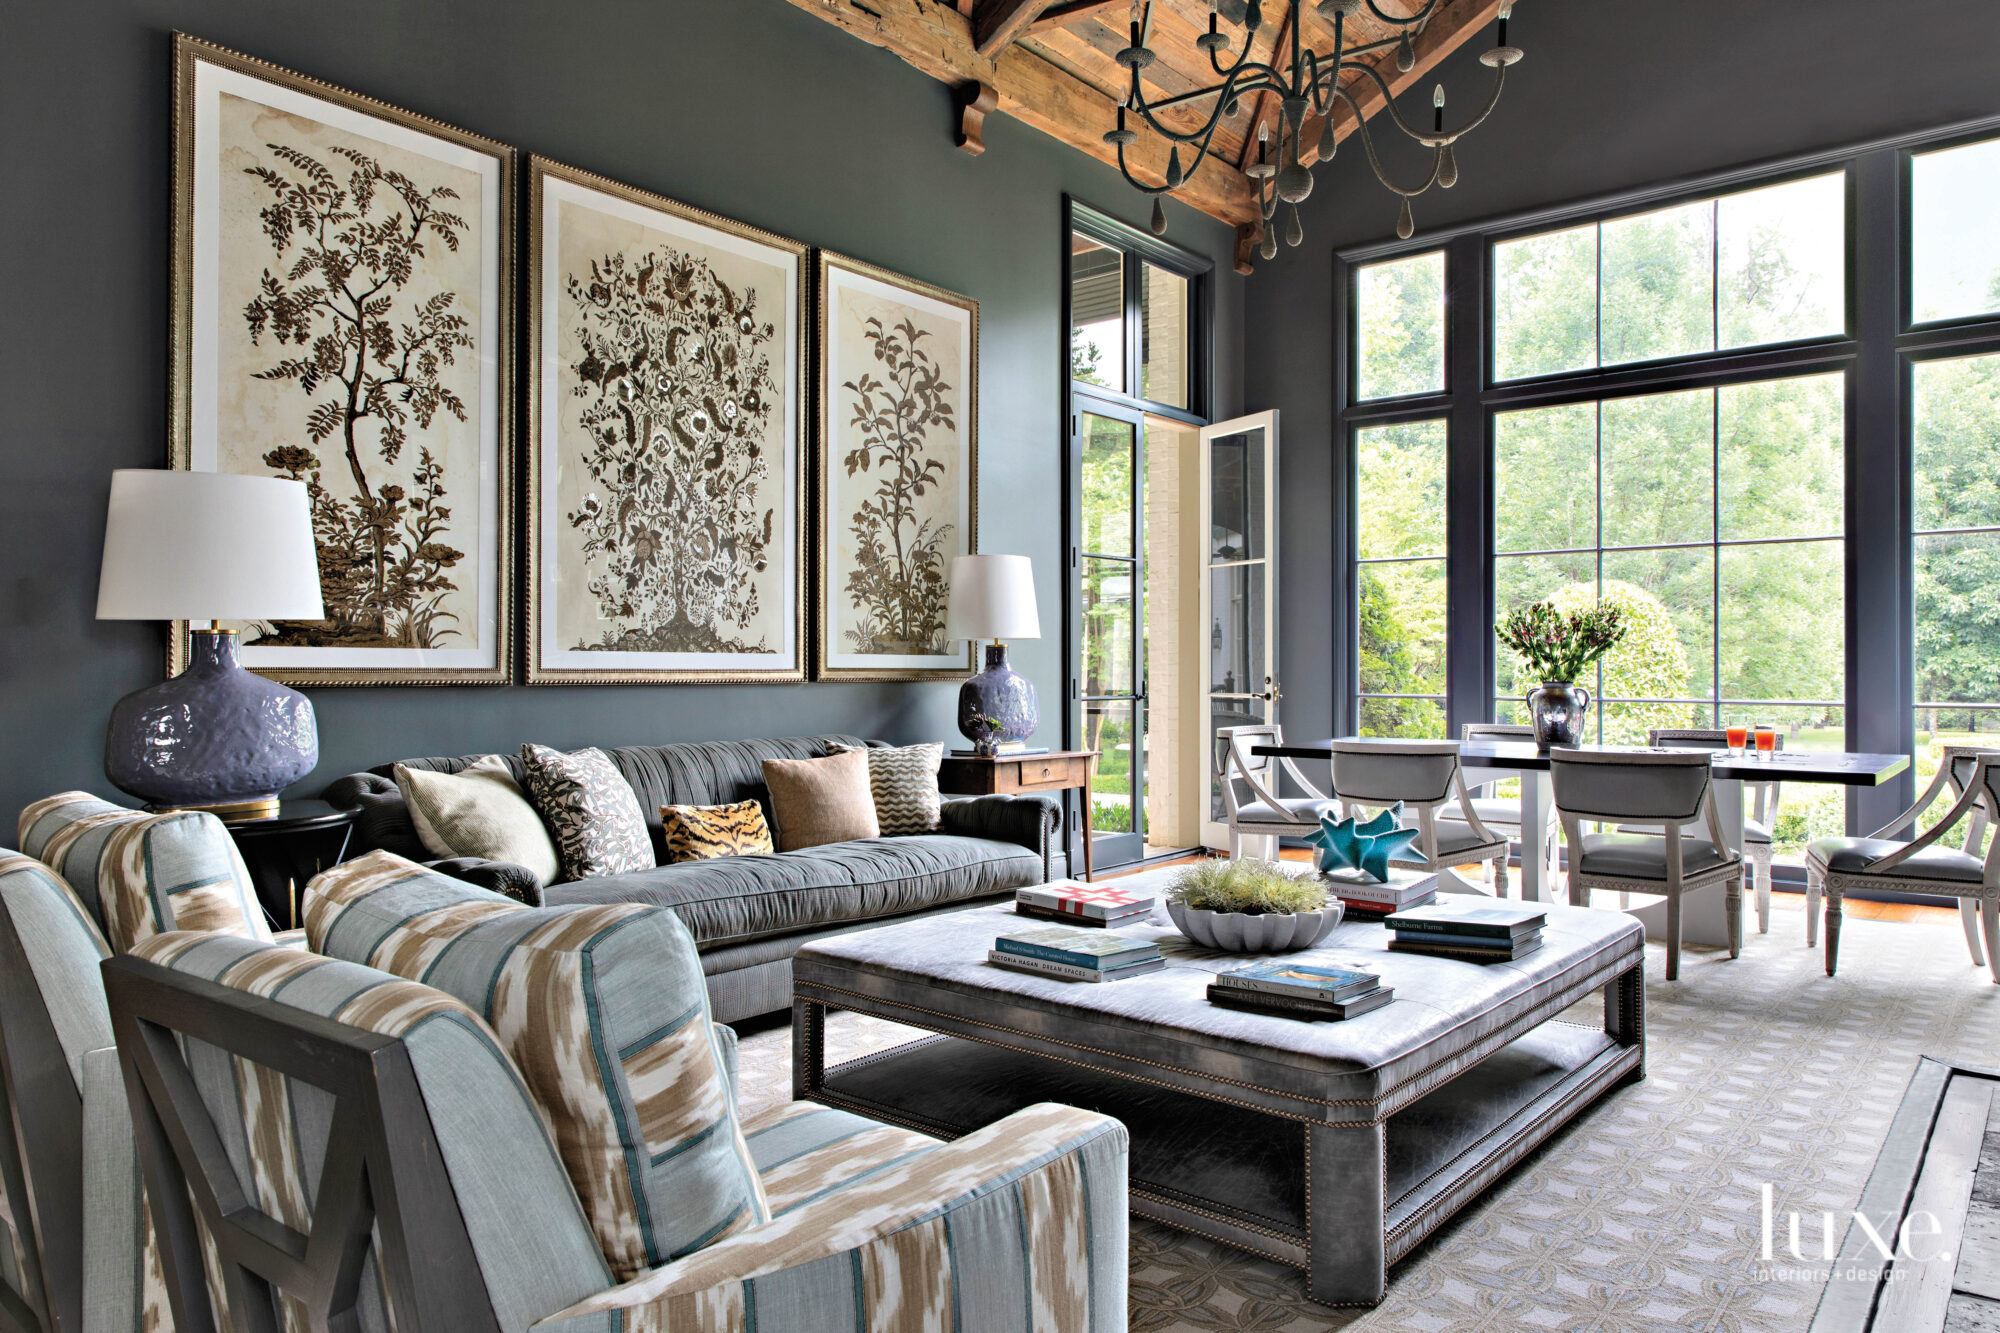 Family room with dark gray walls, florid artwork, wood ceiling, big windows